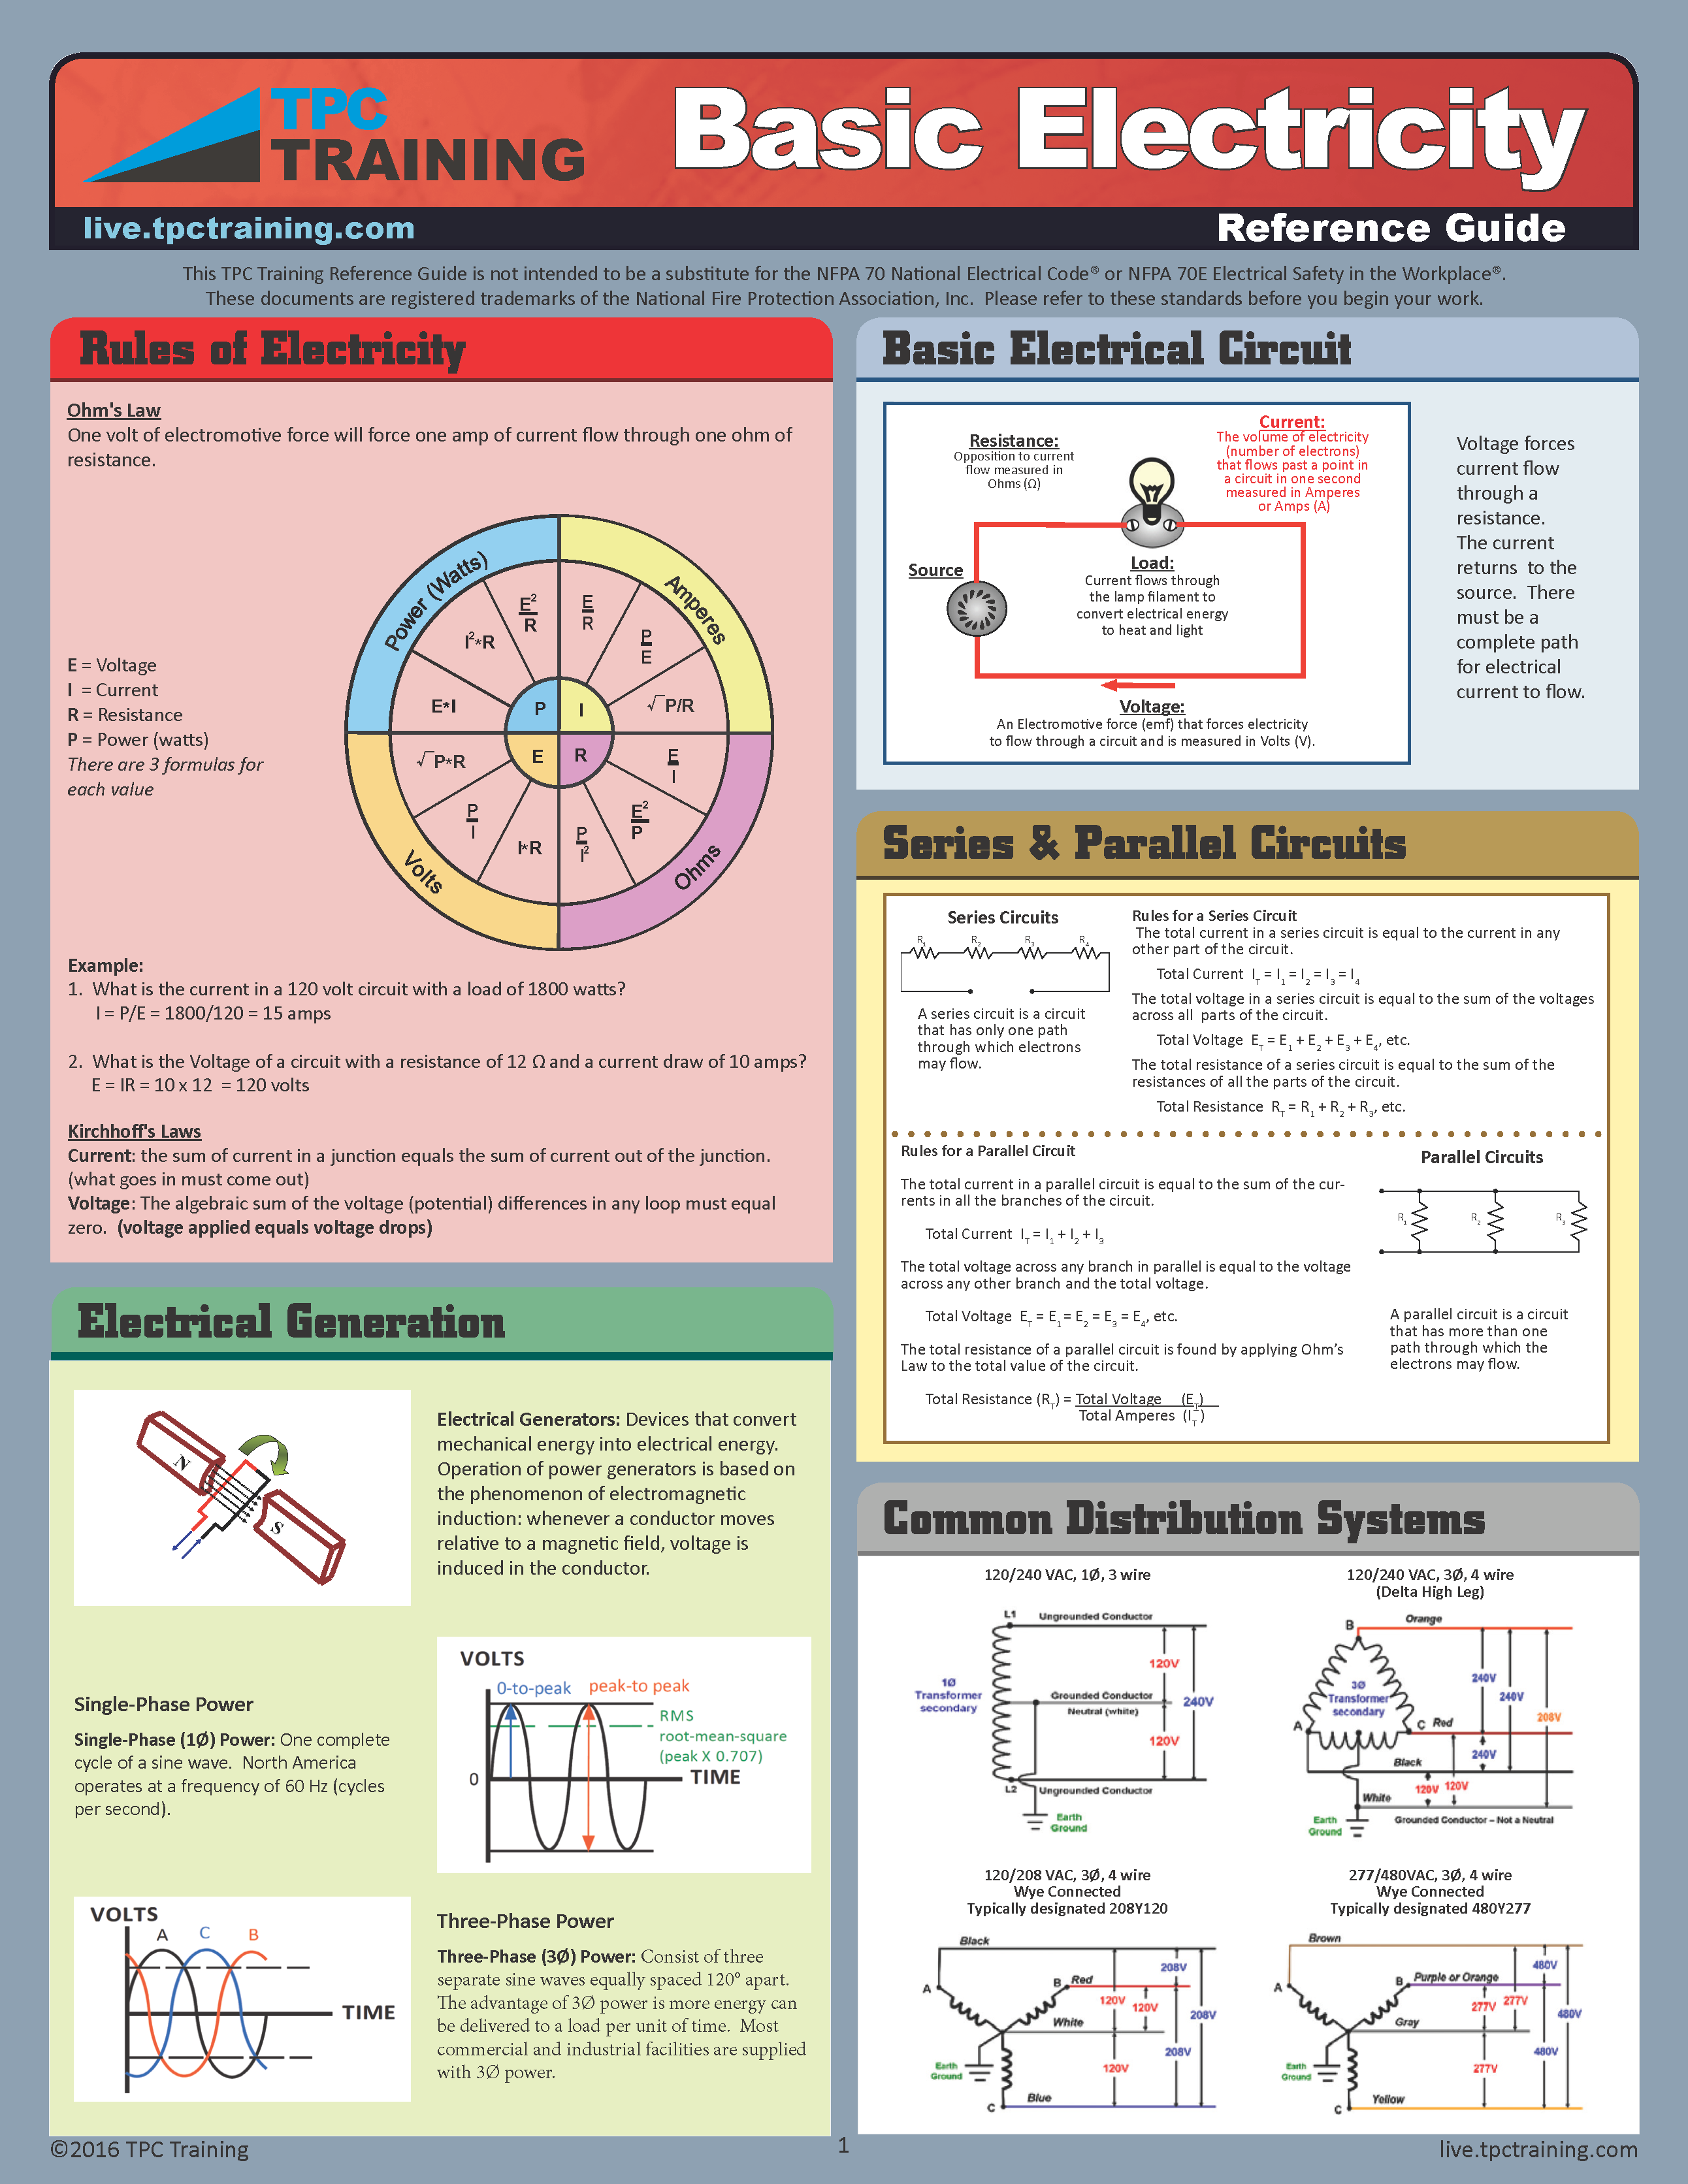 Basic Electricity Reference Guide